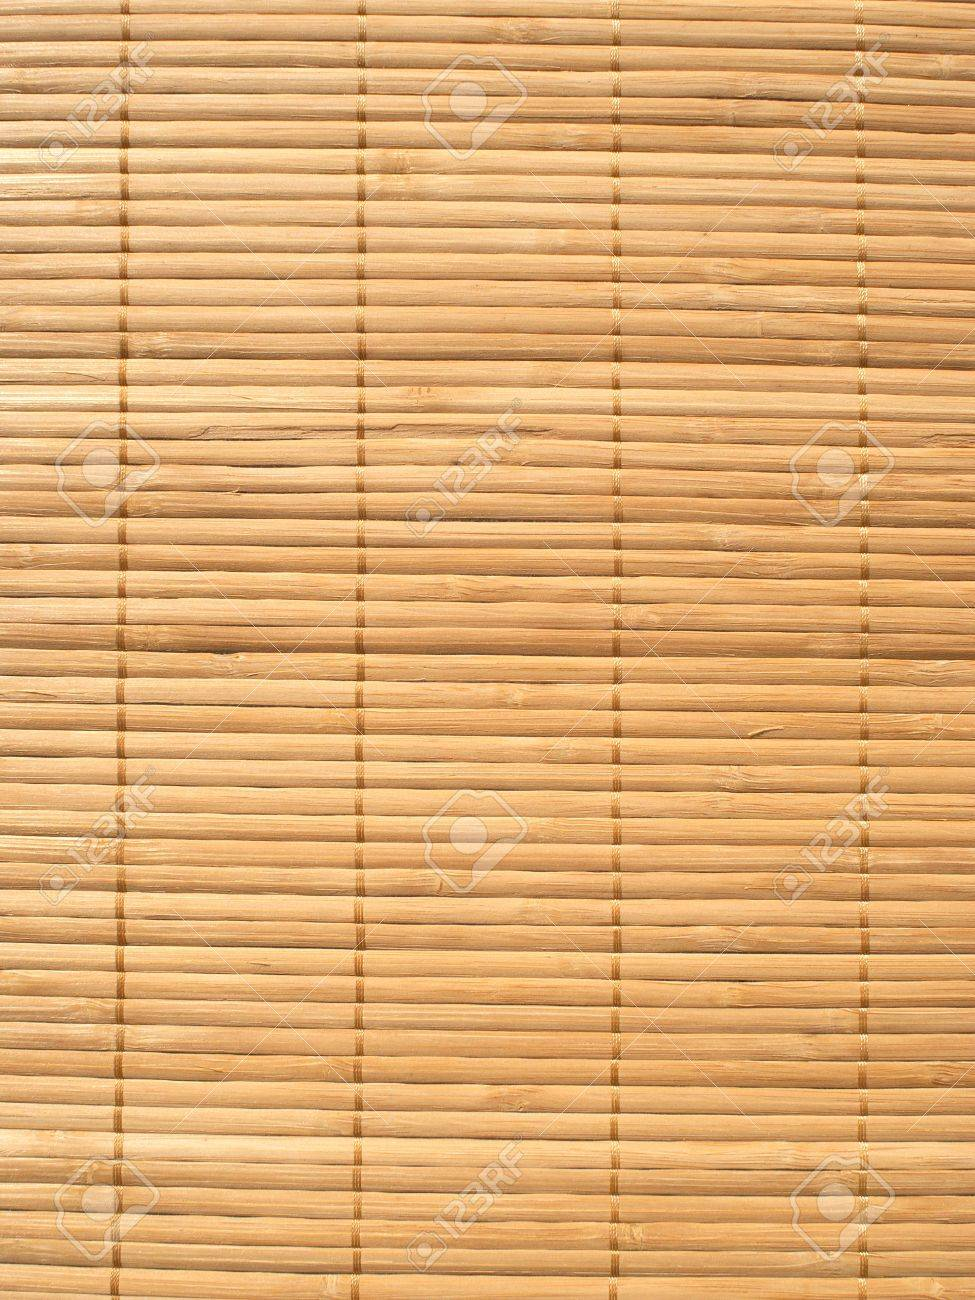 Brown straw mat background vertical view closeup Stock Photo - 16109027